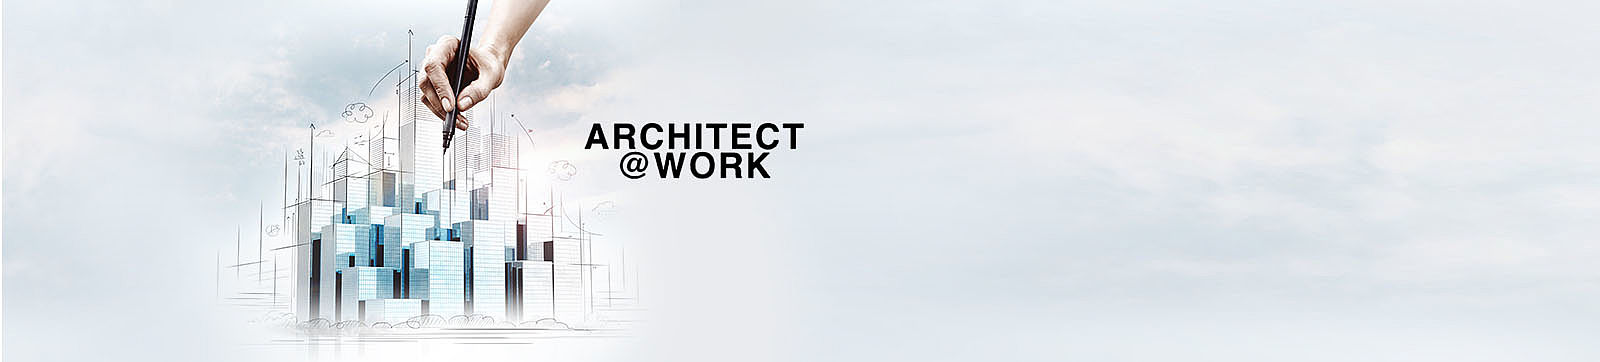 Architekten@work Stageslider